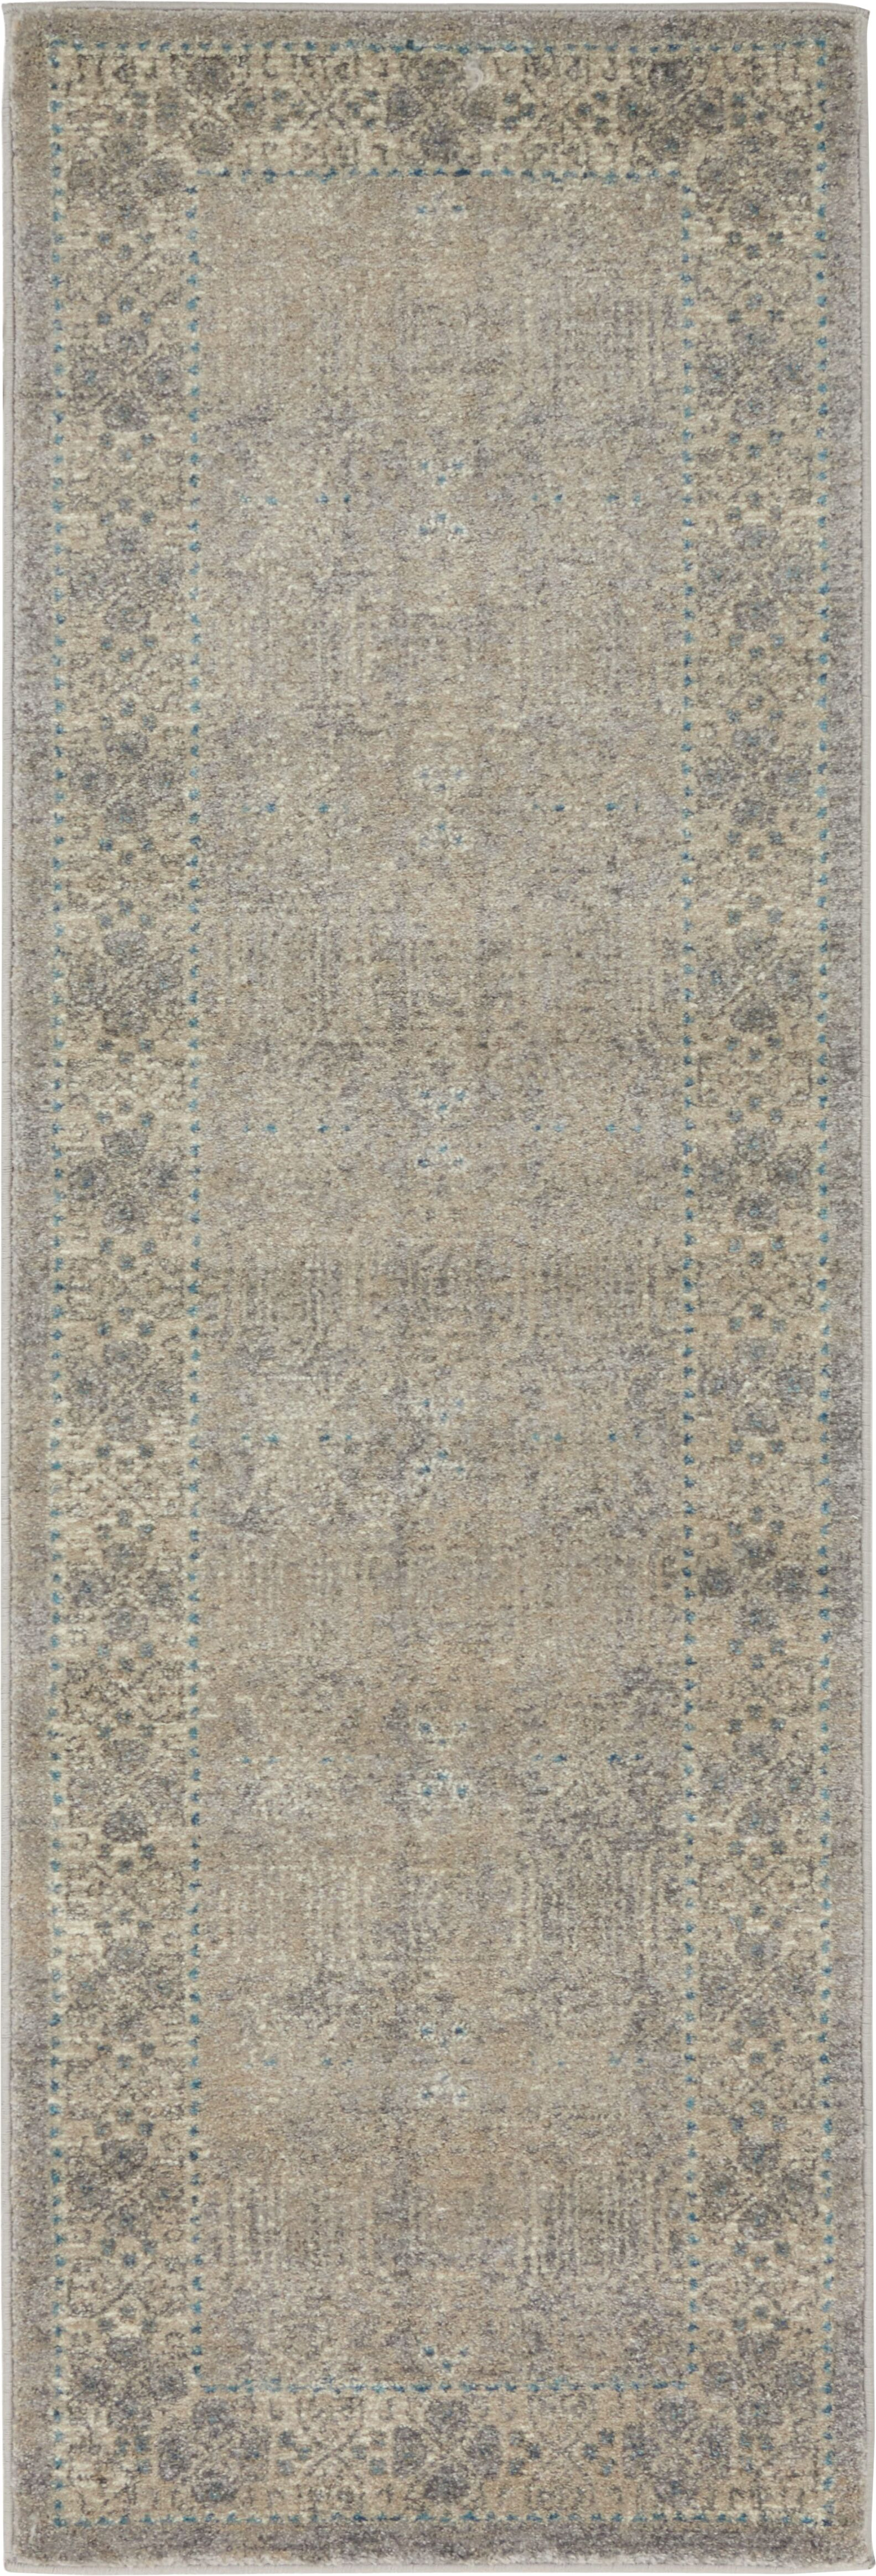 Brierfield Gray Area Rug Rug Size: Runner 2' x 6'